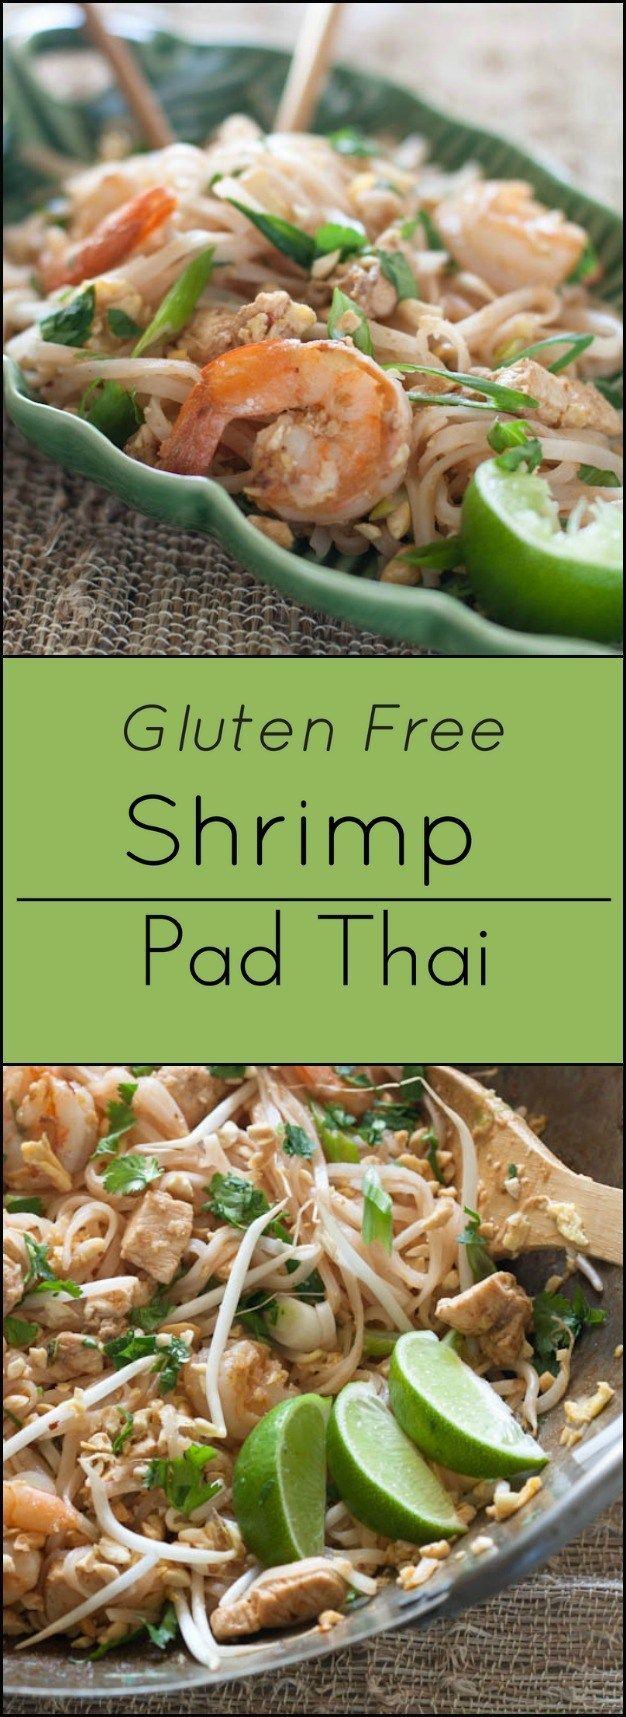 Gluten free Shrimp Pad Thai.